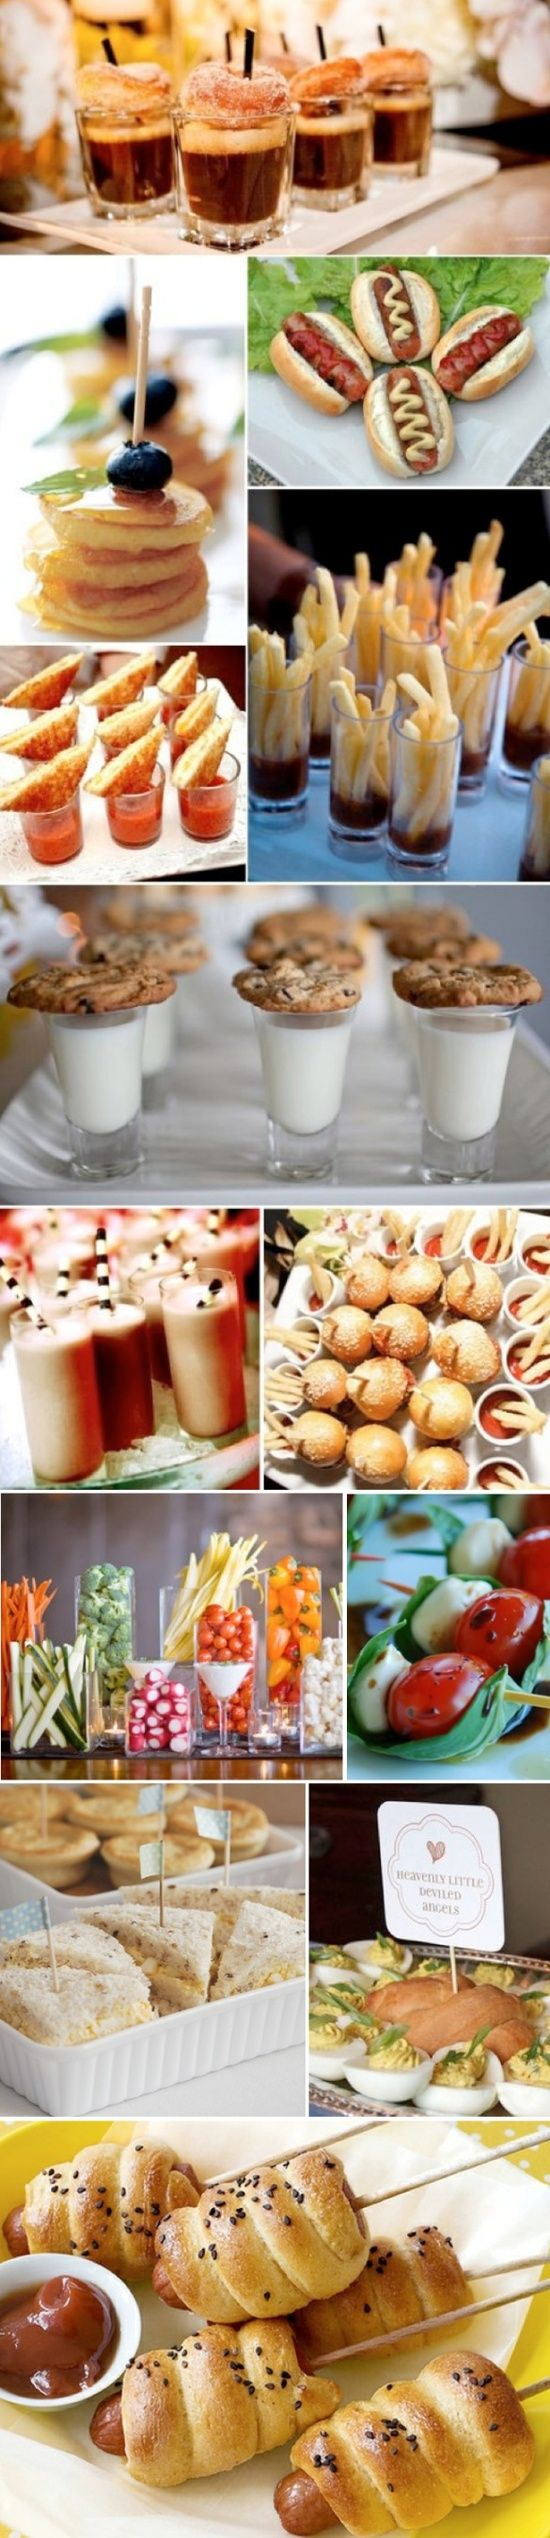 finger food ideas for bridal shower%0A Finger foods for that party you u    ve been planning     photos